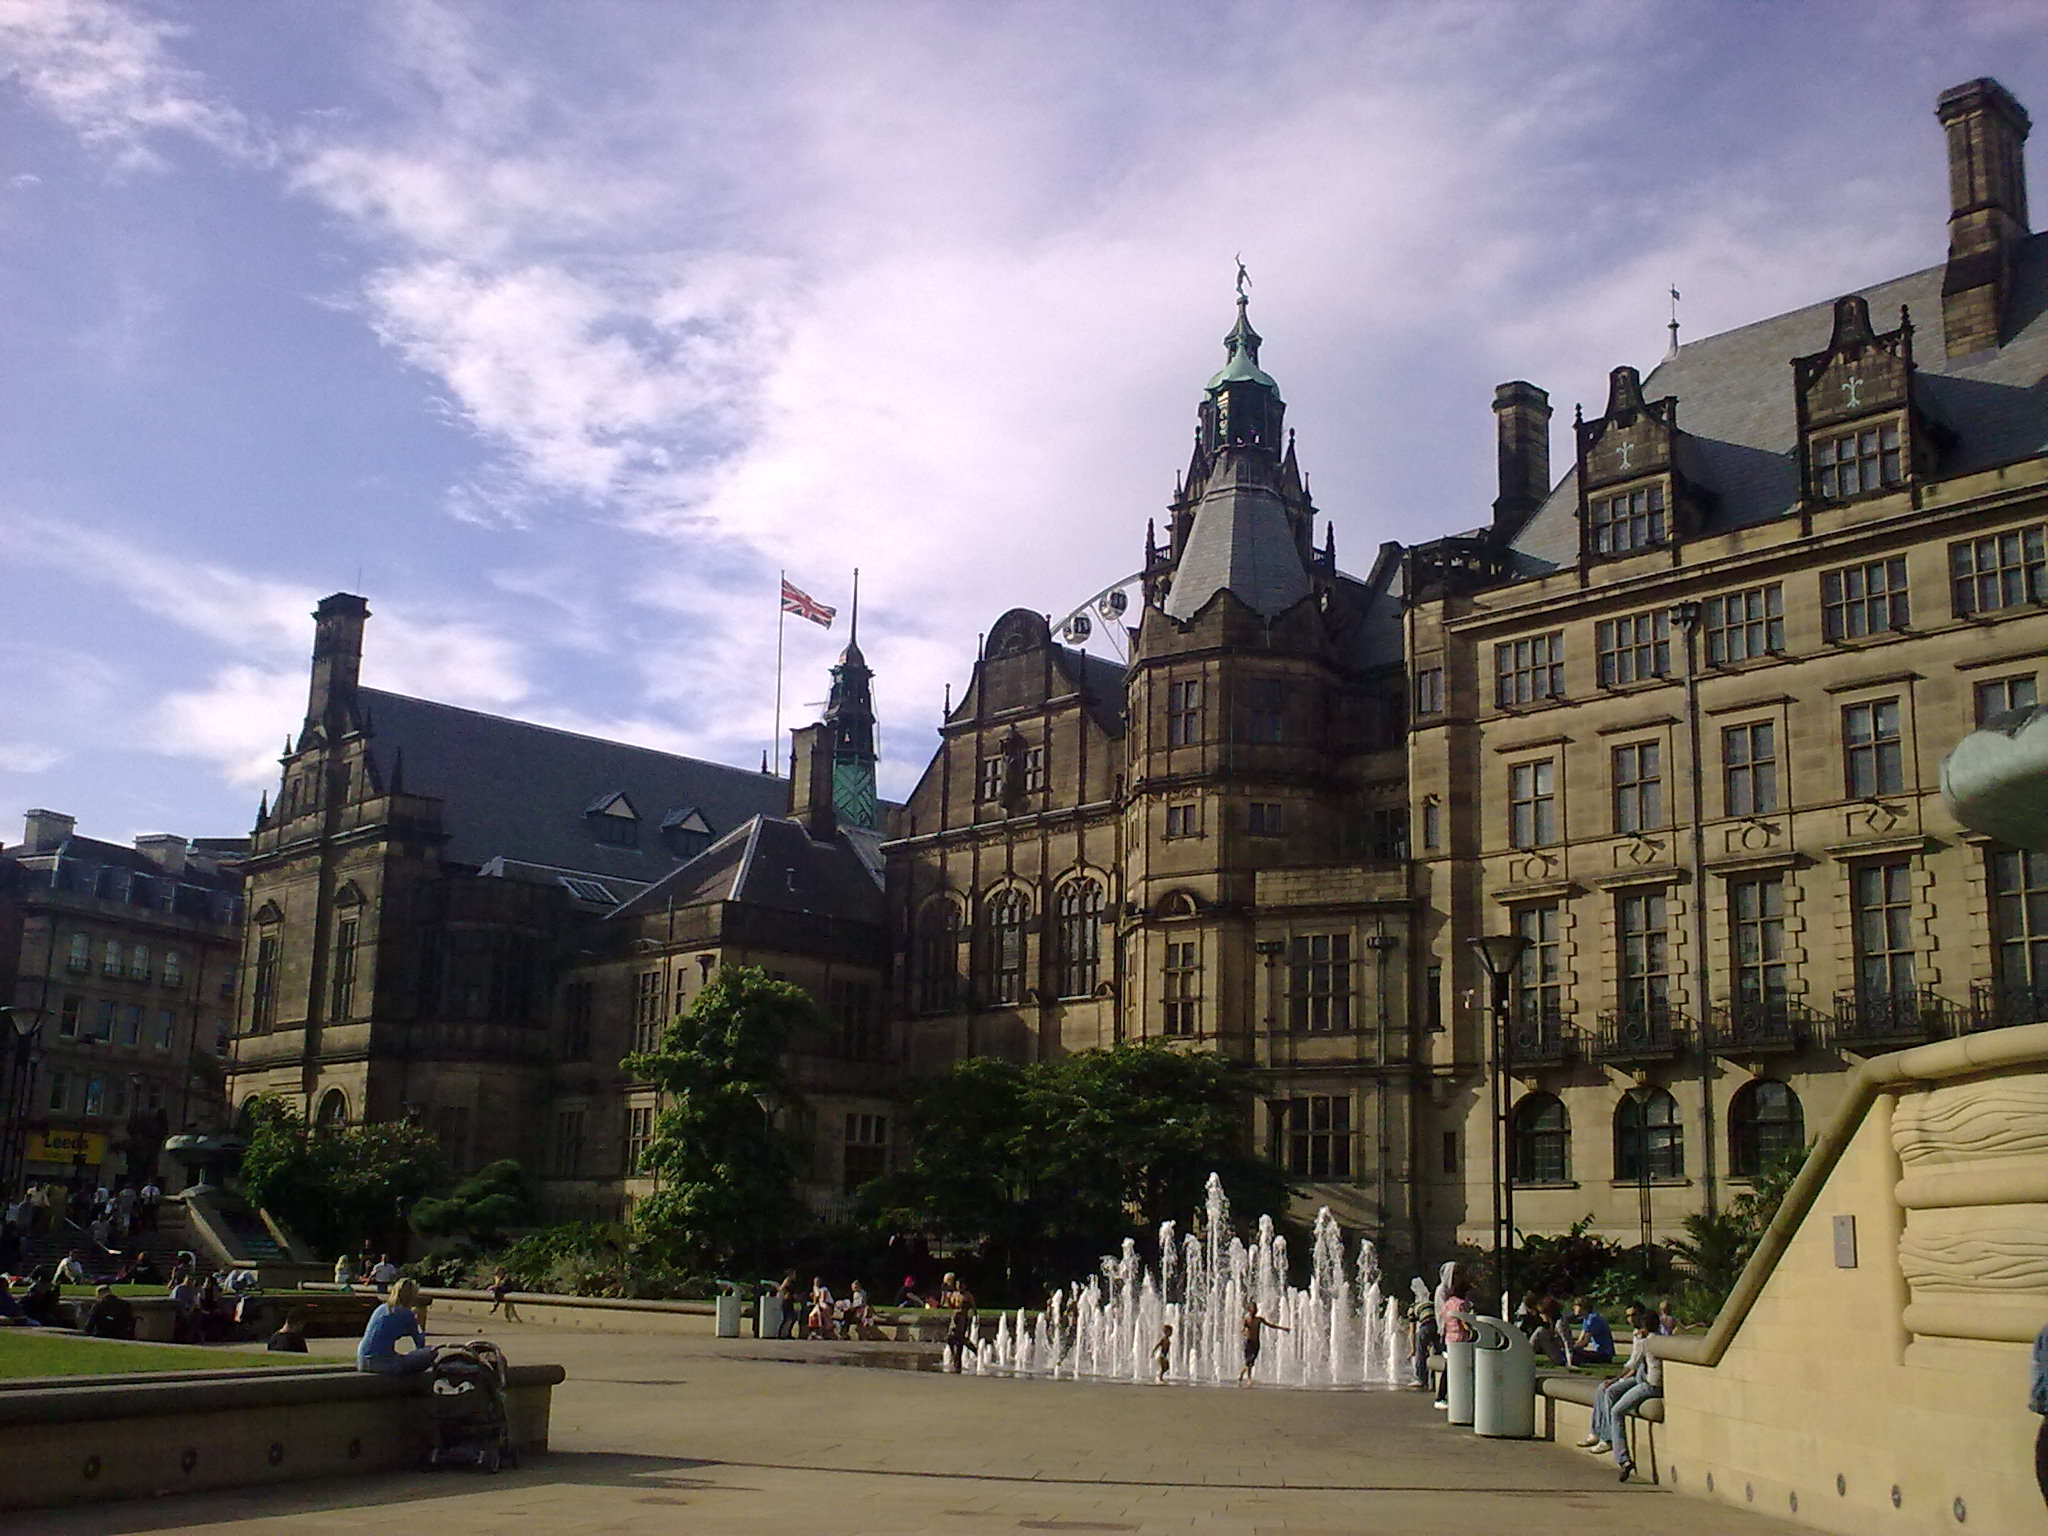 Gratis dating i sheffield storbritannien